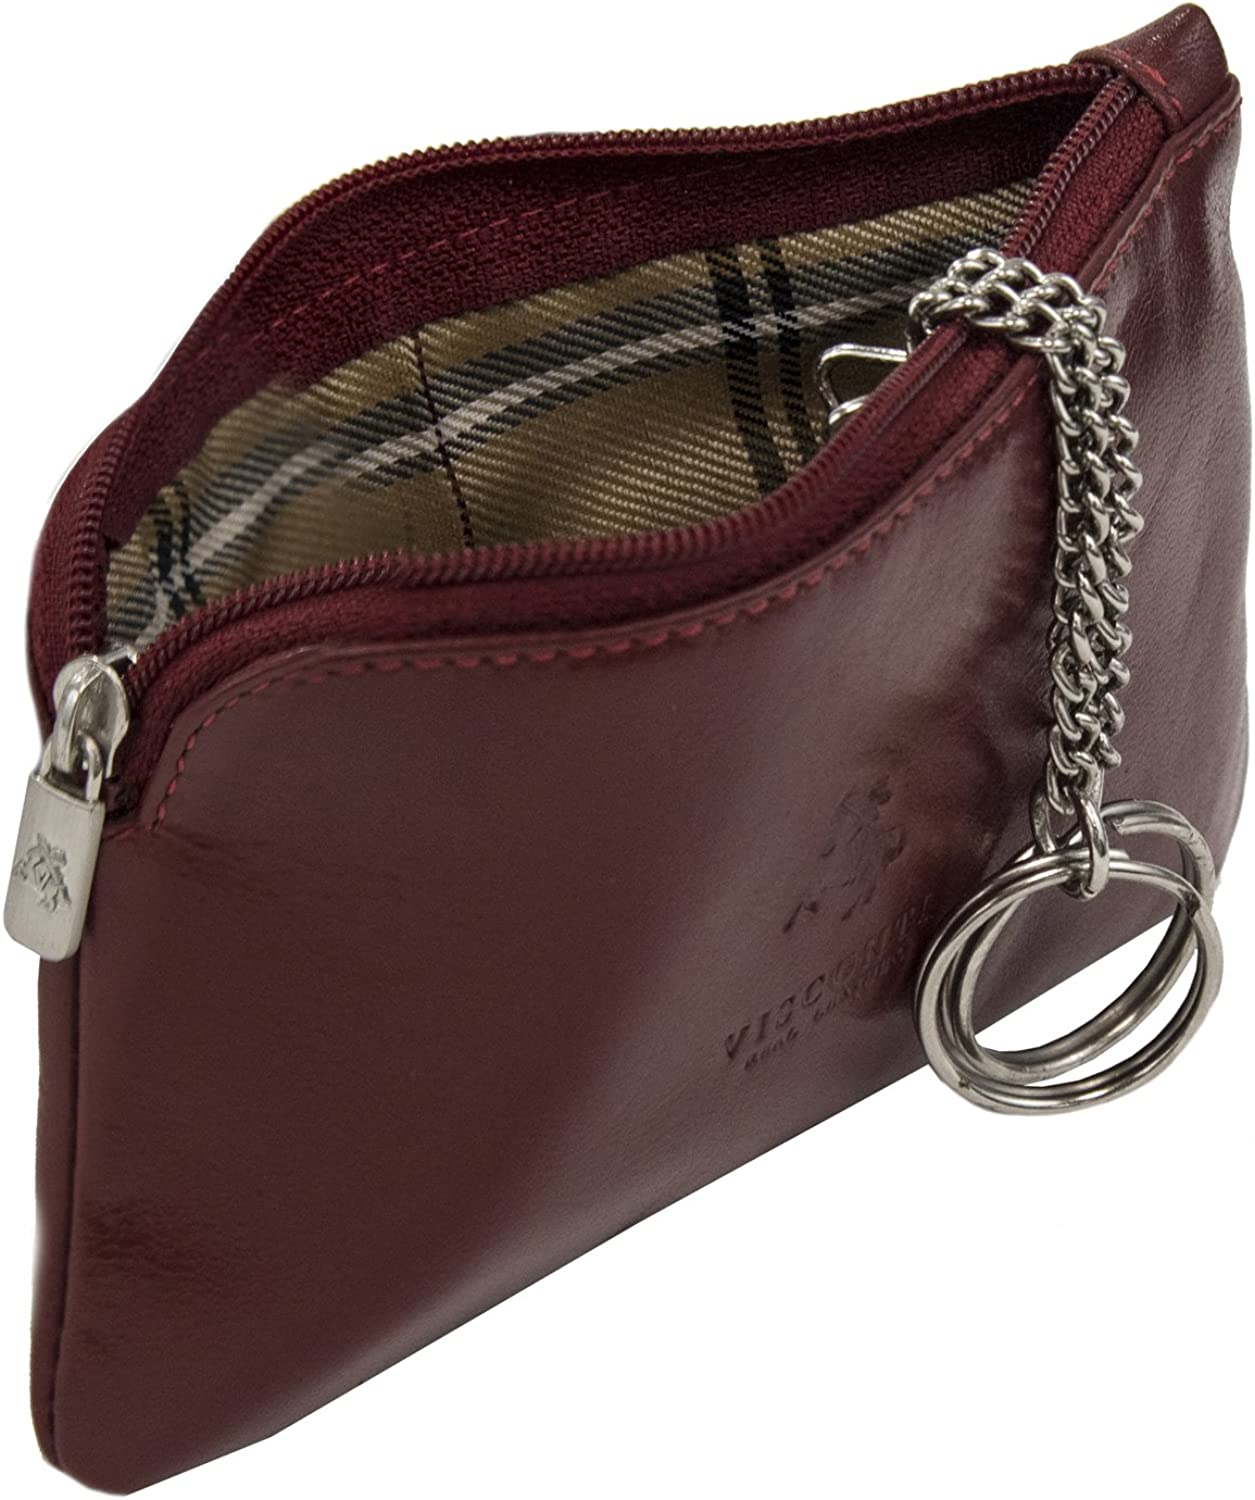 Visconti Monza 19 Leather Key Ring Zippered Coin Pouch Purse